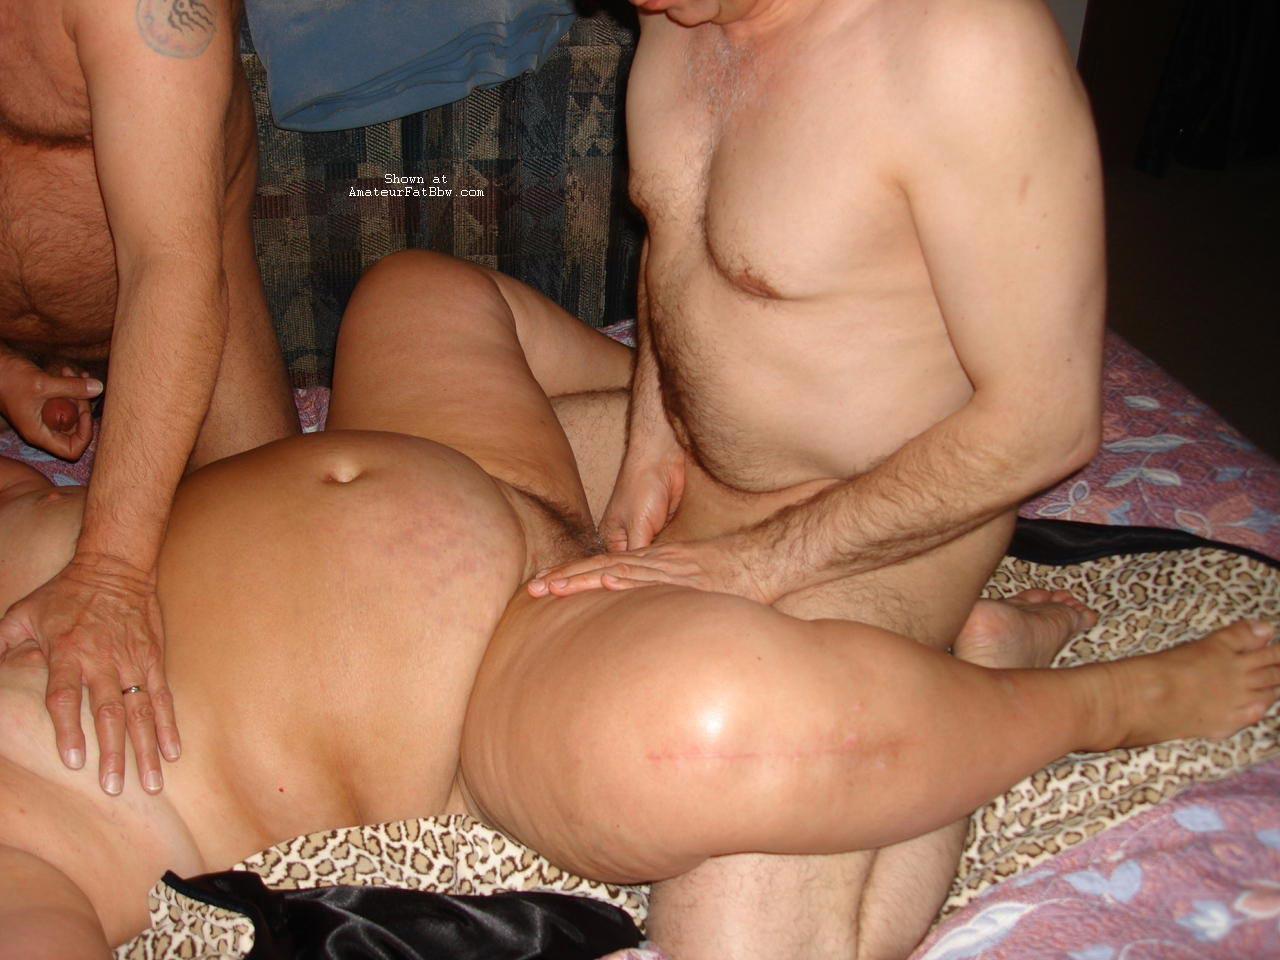 Swingers 21 Czech Mega Swingers 21 » () - Download Free Porn from Keep2Share